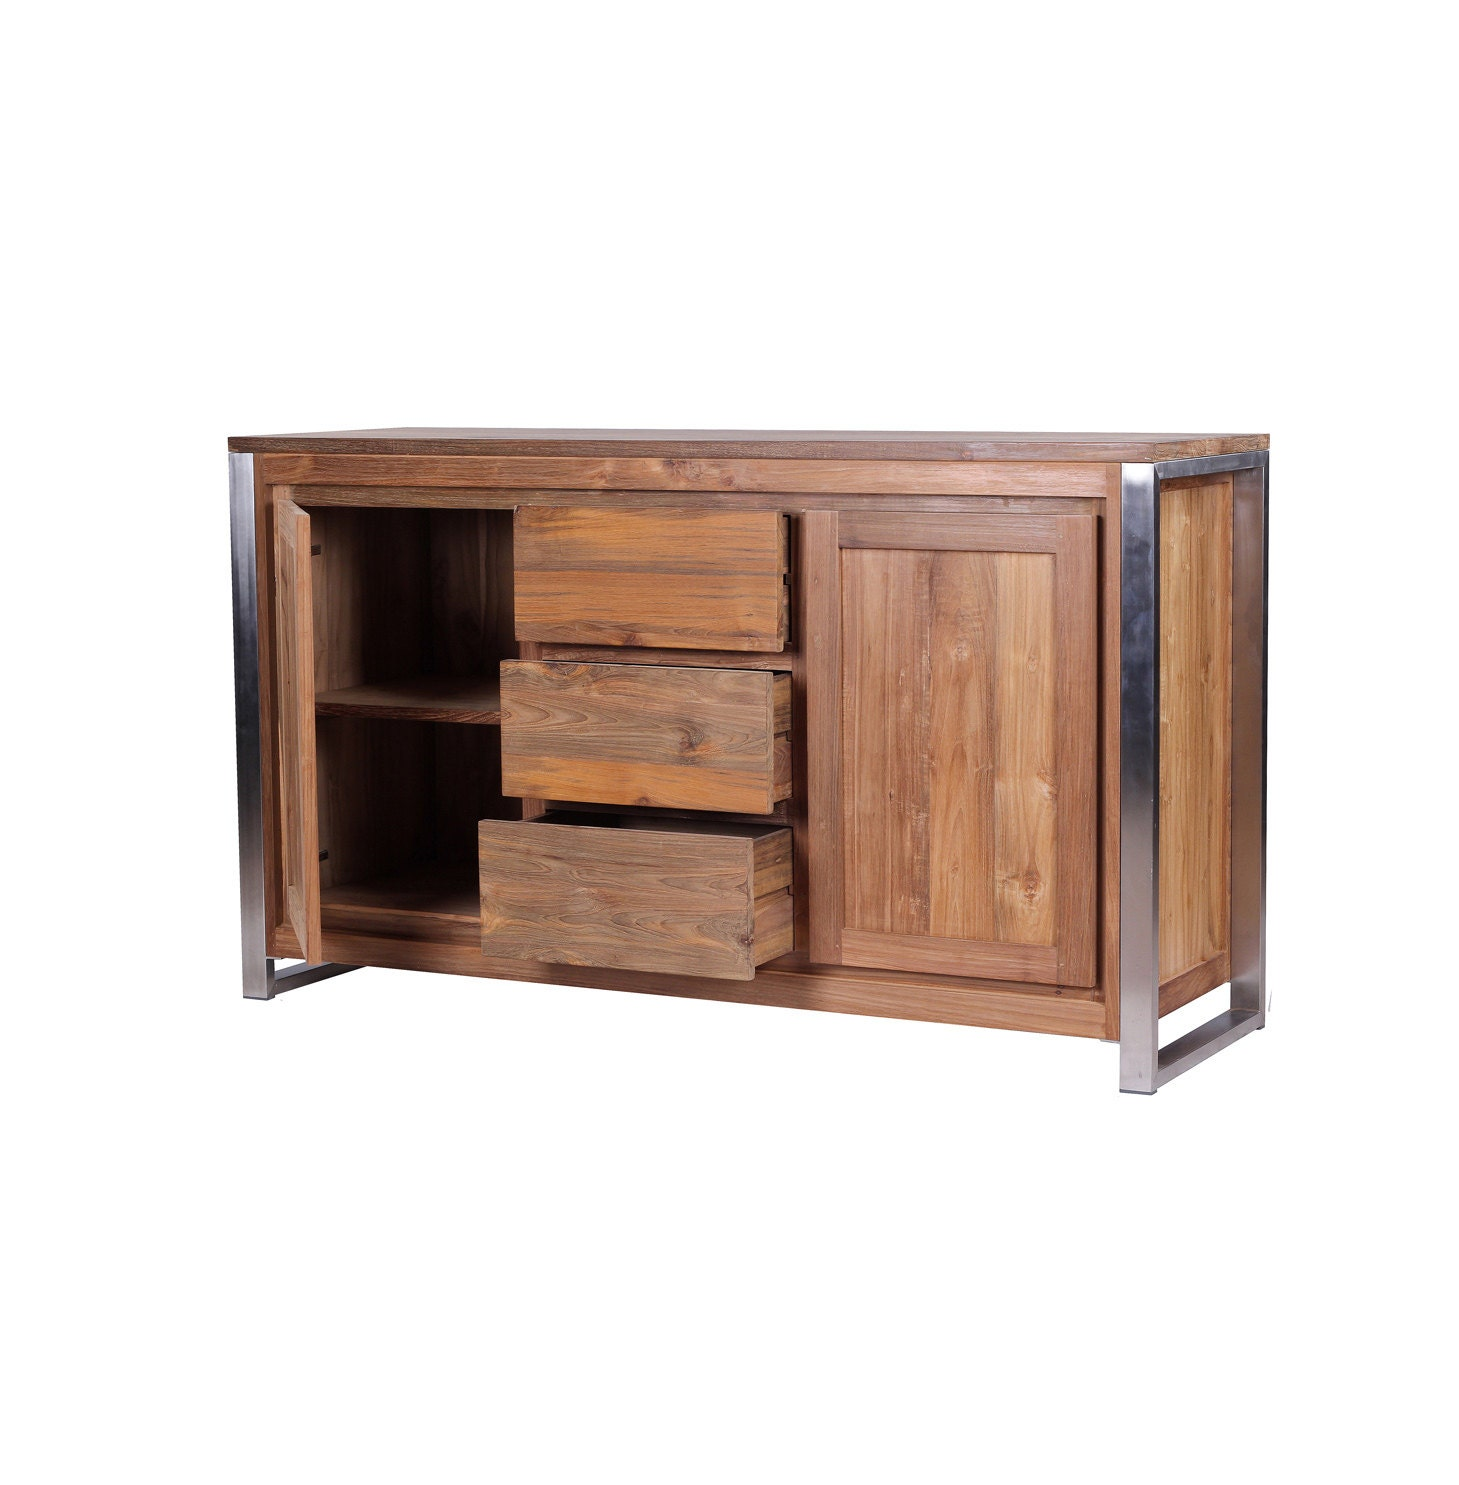 Loyok Reclaimed Industrial Sideboard. Stunning ethical ecofriendly and free delivery!